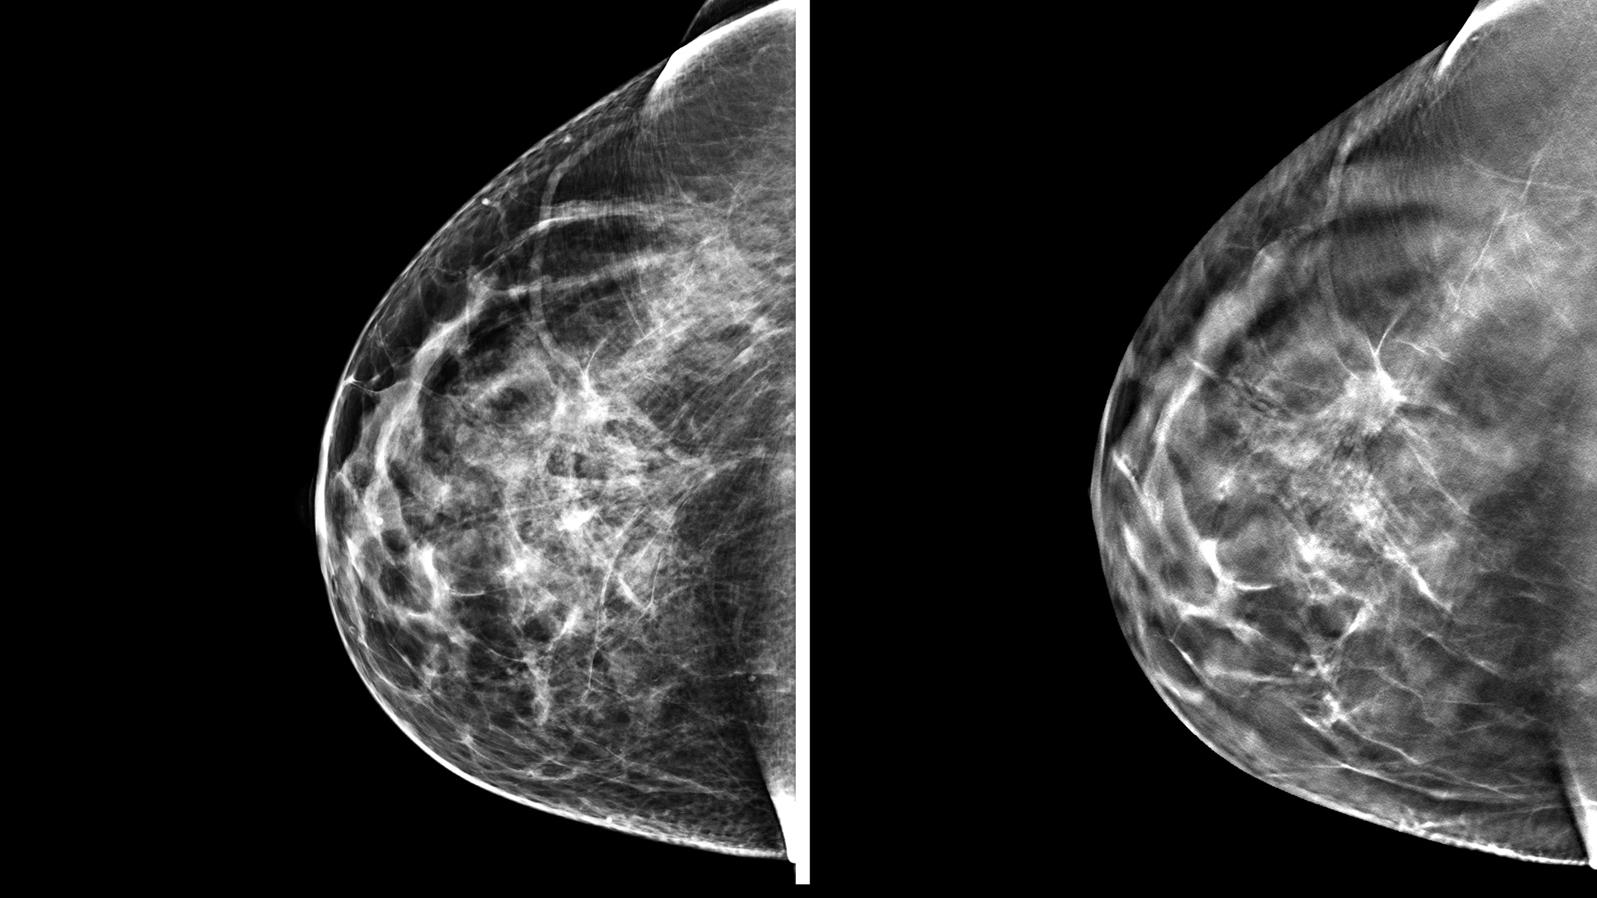 tomosynthesis mammography 3d mammography detects more cancers with fewer recalls tomosynthesis is available at women's center for radiology.